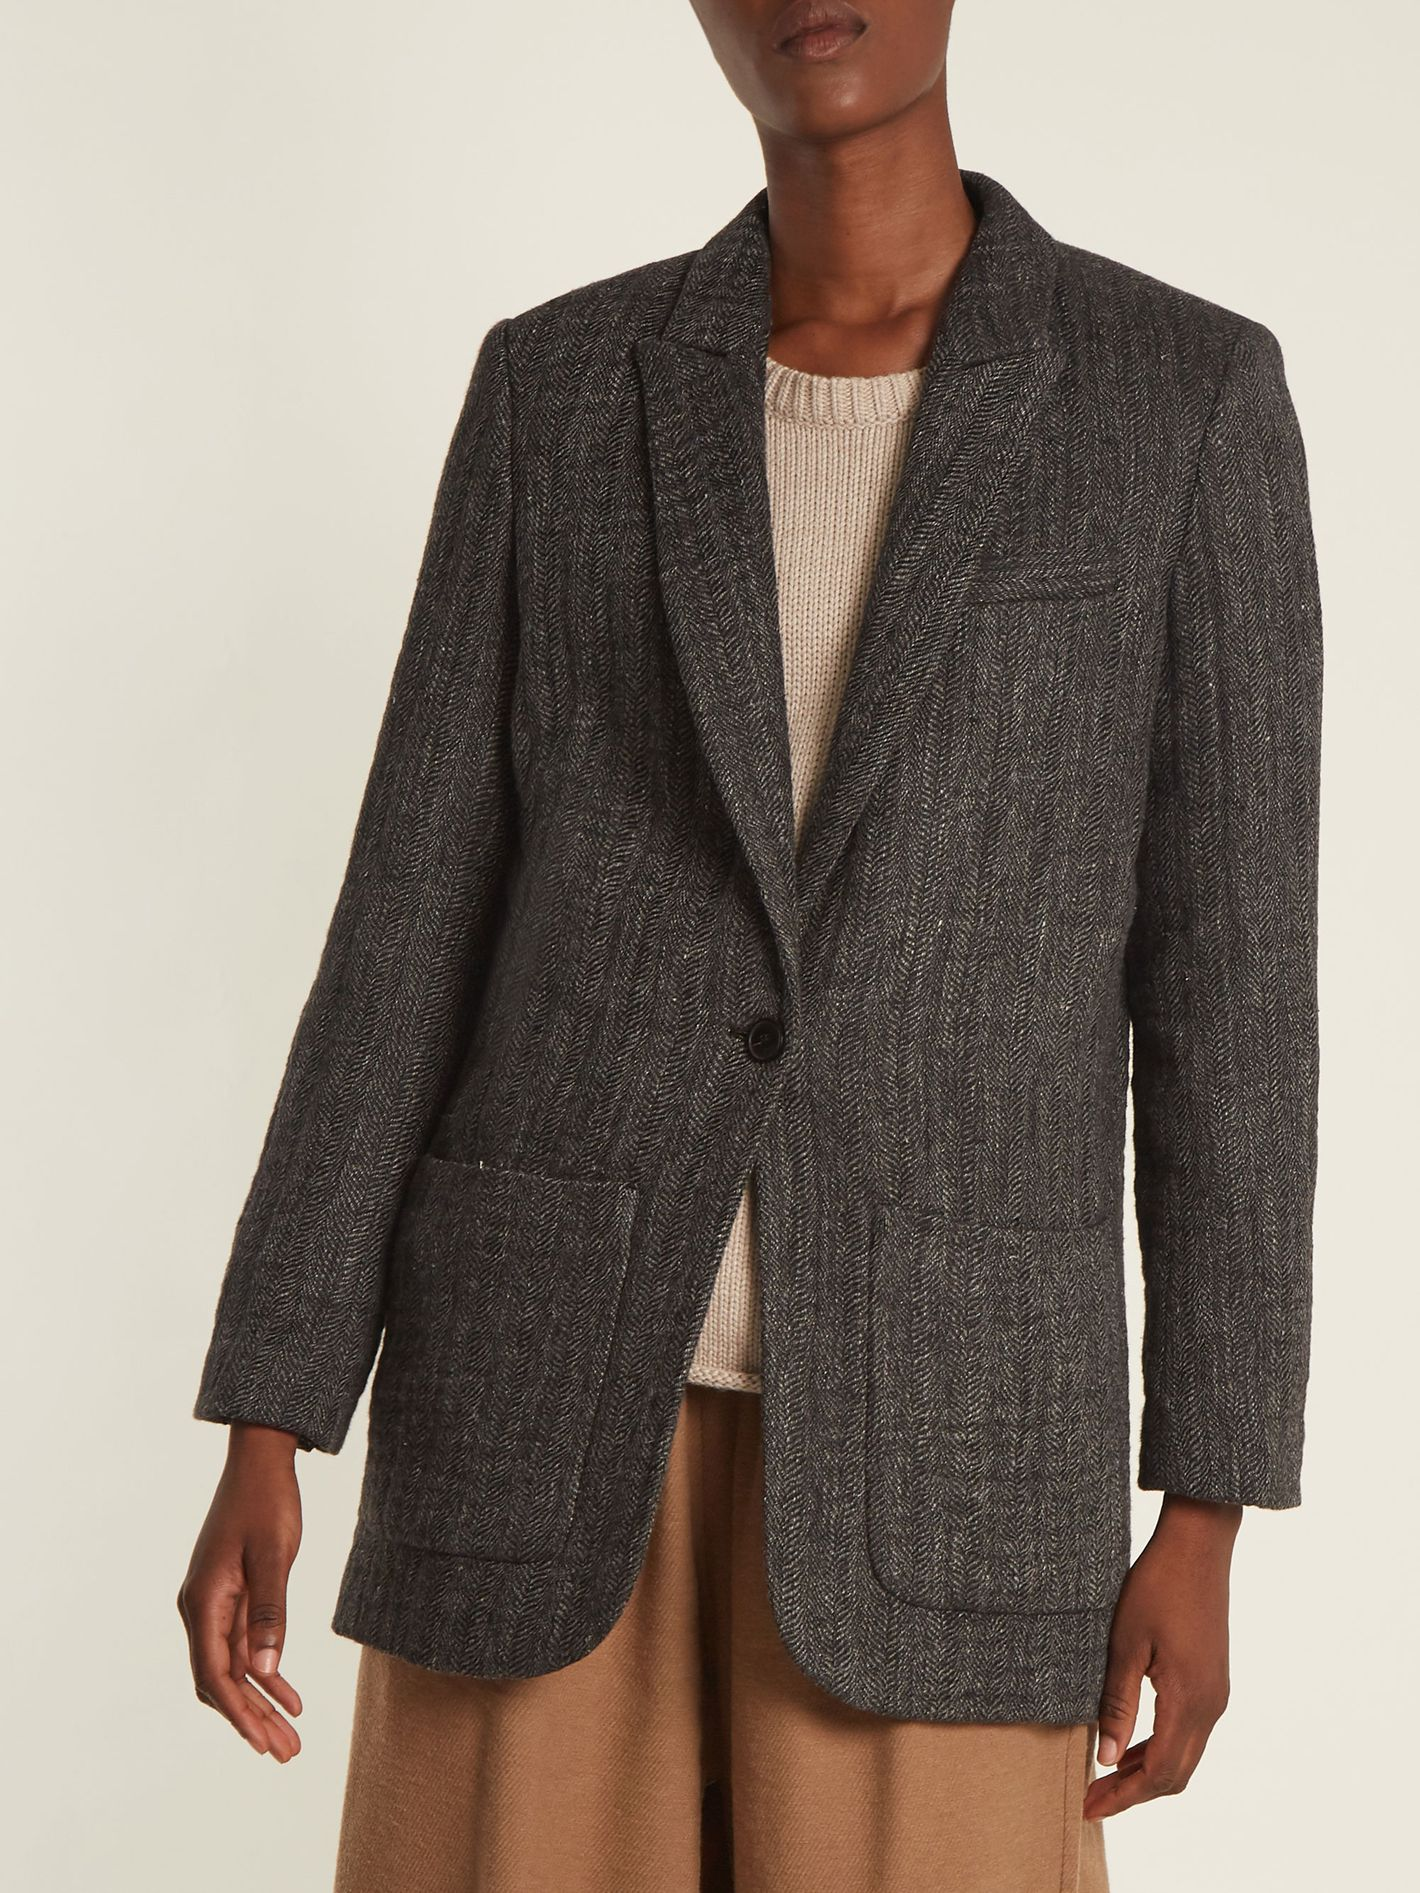 Masscob single-breasted herringbone blazer